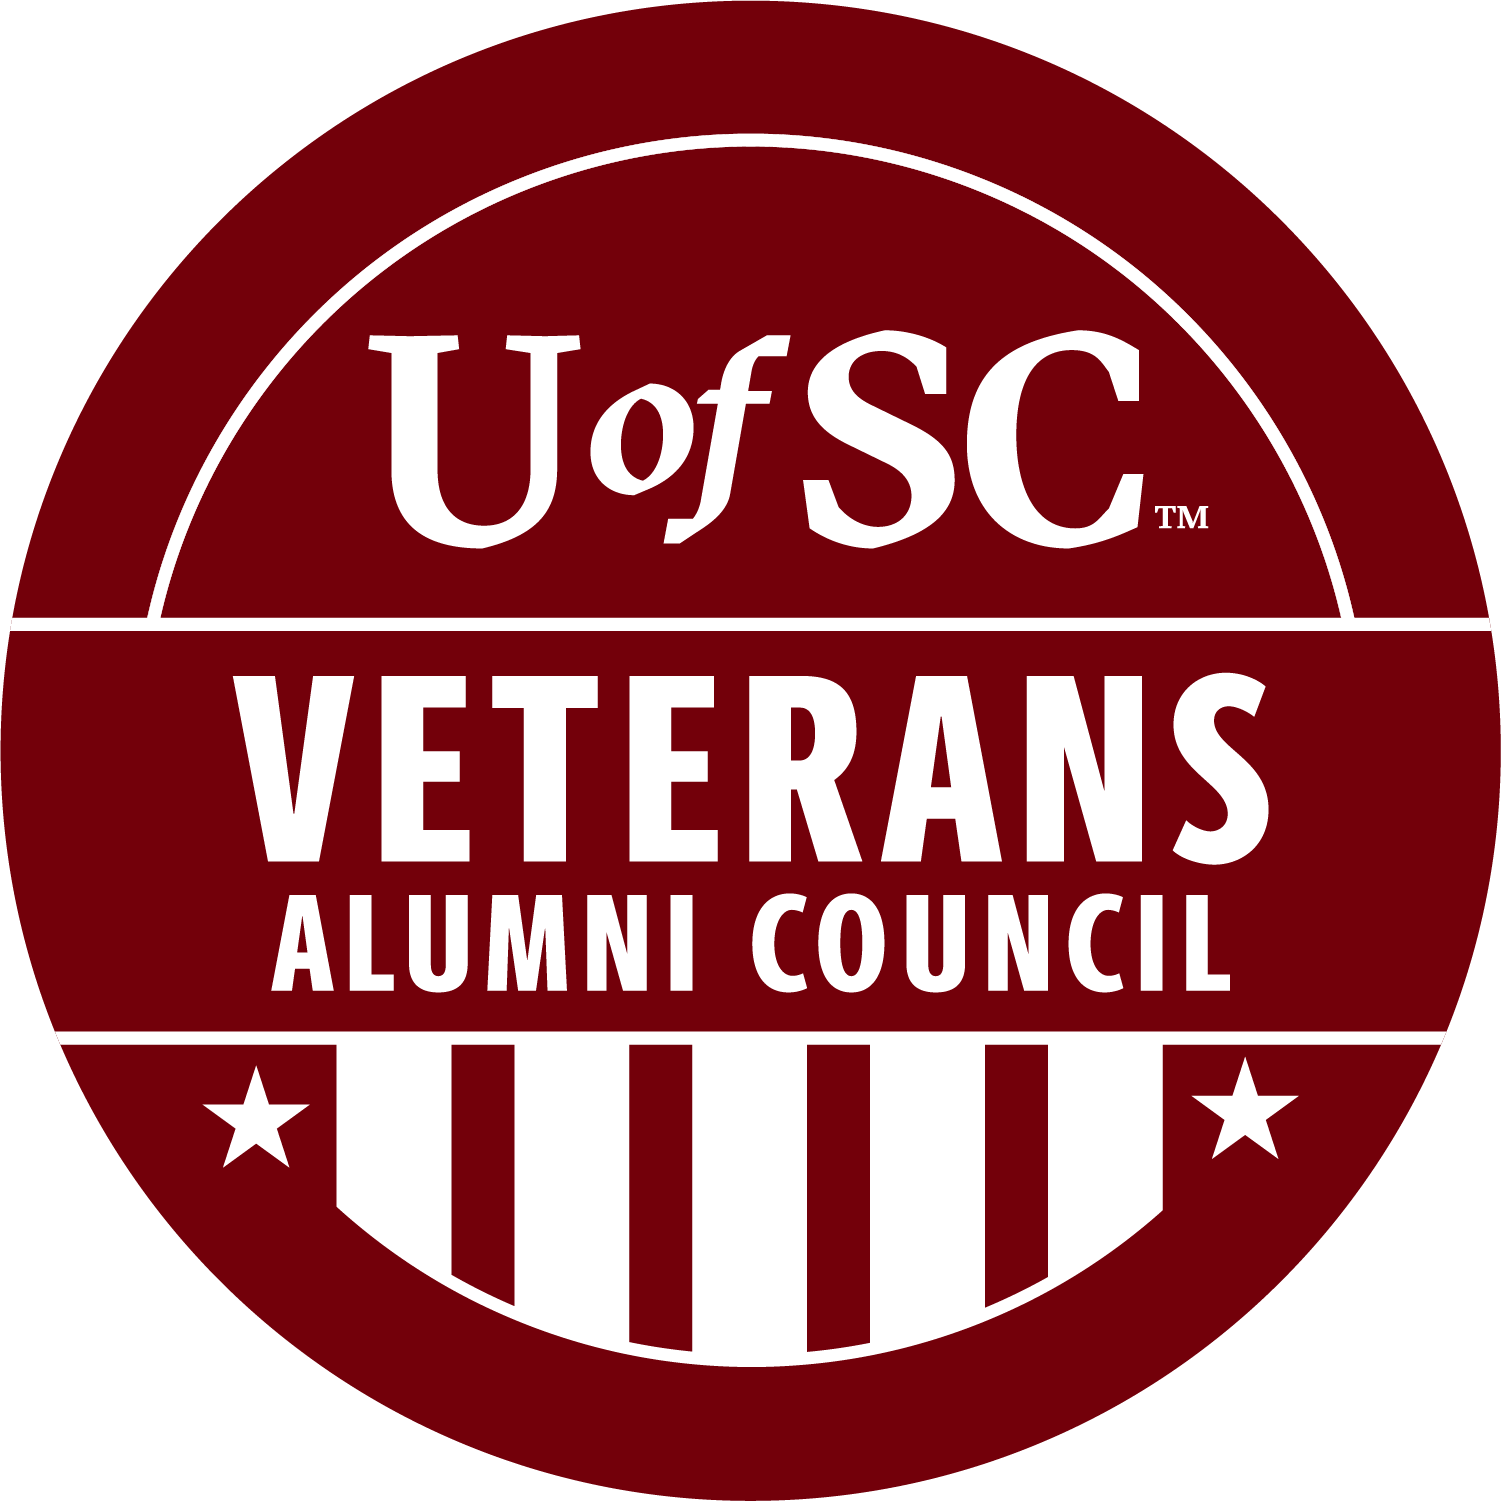 Veterans Alumni Council